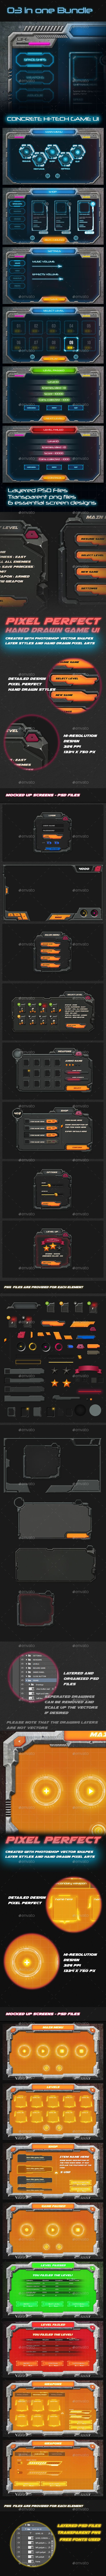 03 in 01 Realistic Game UI Bundle - User Interfaces Game Assets